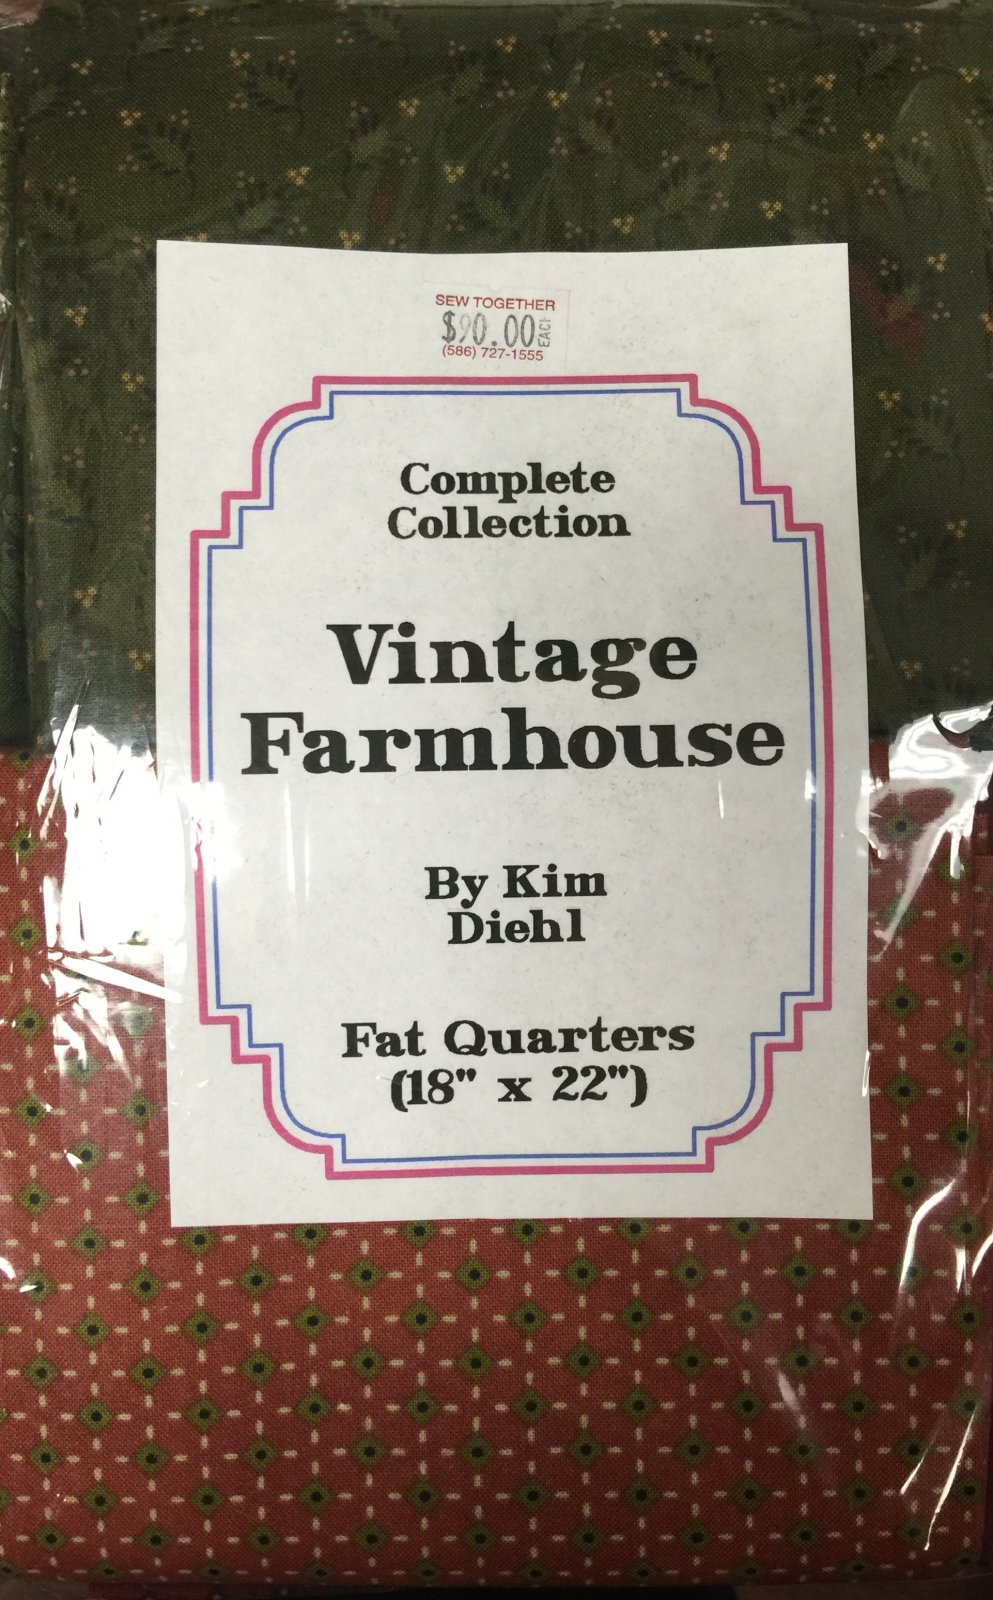 Vintage Farmhouse Complete Collection by Kim Diehl